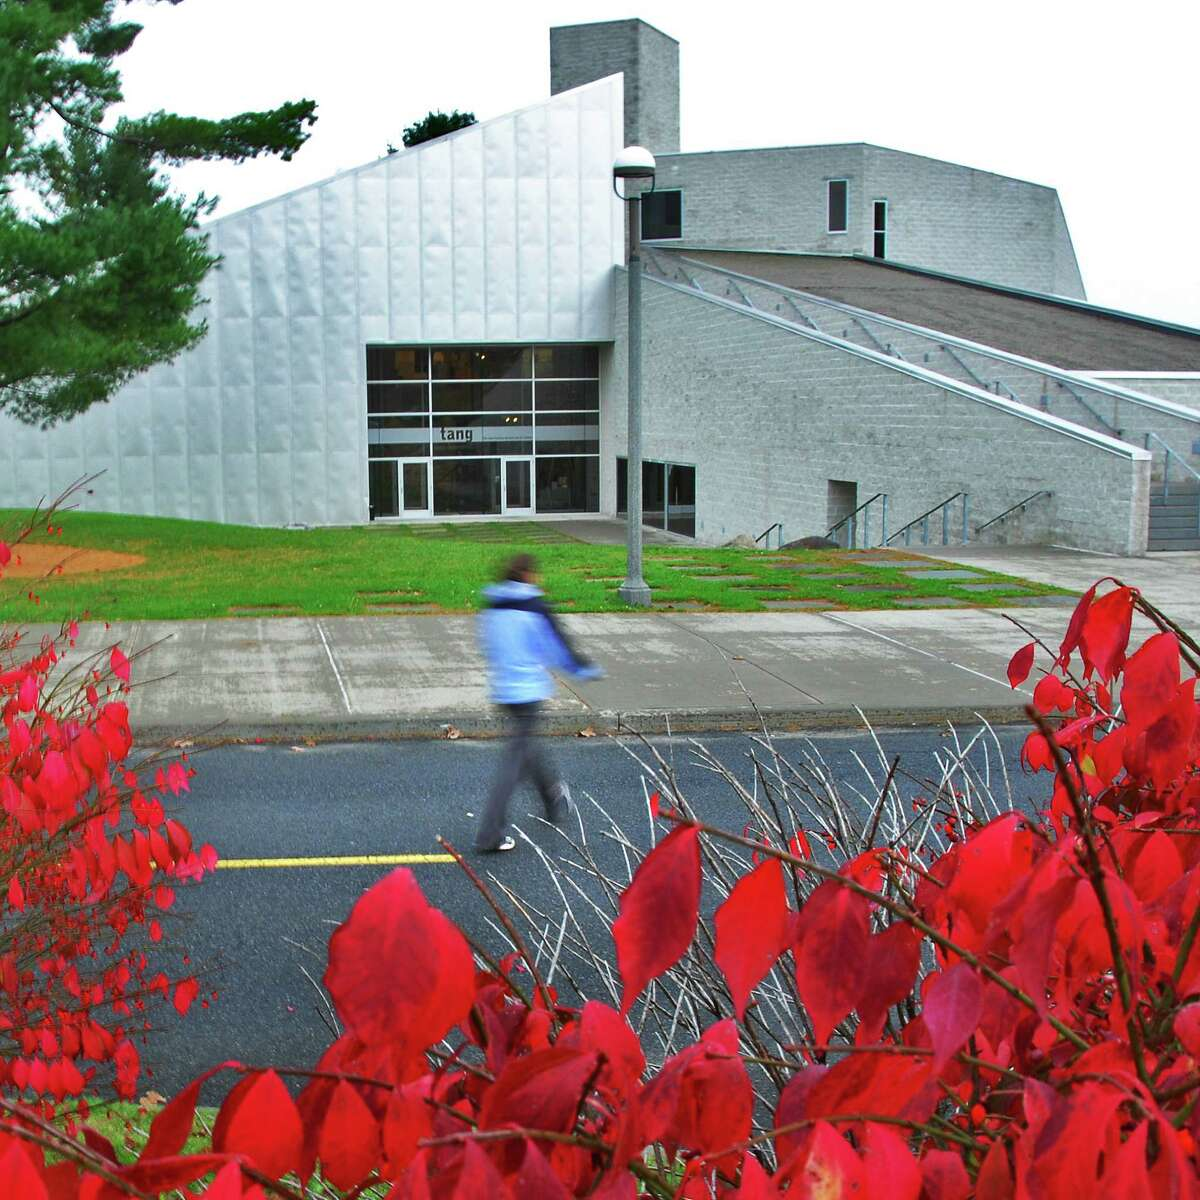 Times Union staff photo by John Carl D'Annibale: A student passes by Skidmore College's Tang Museum in Saratoga Springs Thursday morning November 1, 2007. FOR SARATOGA SEEN BLOG